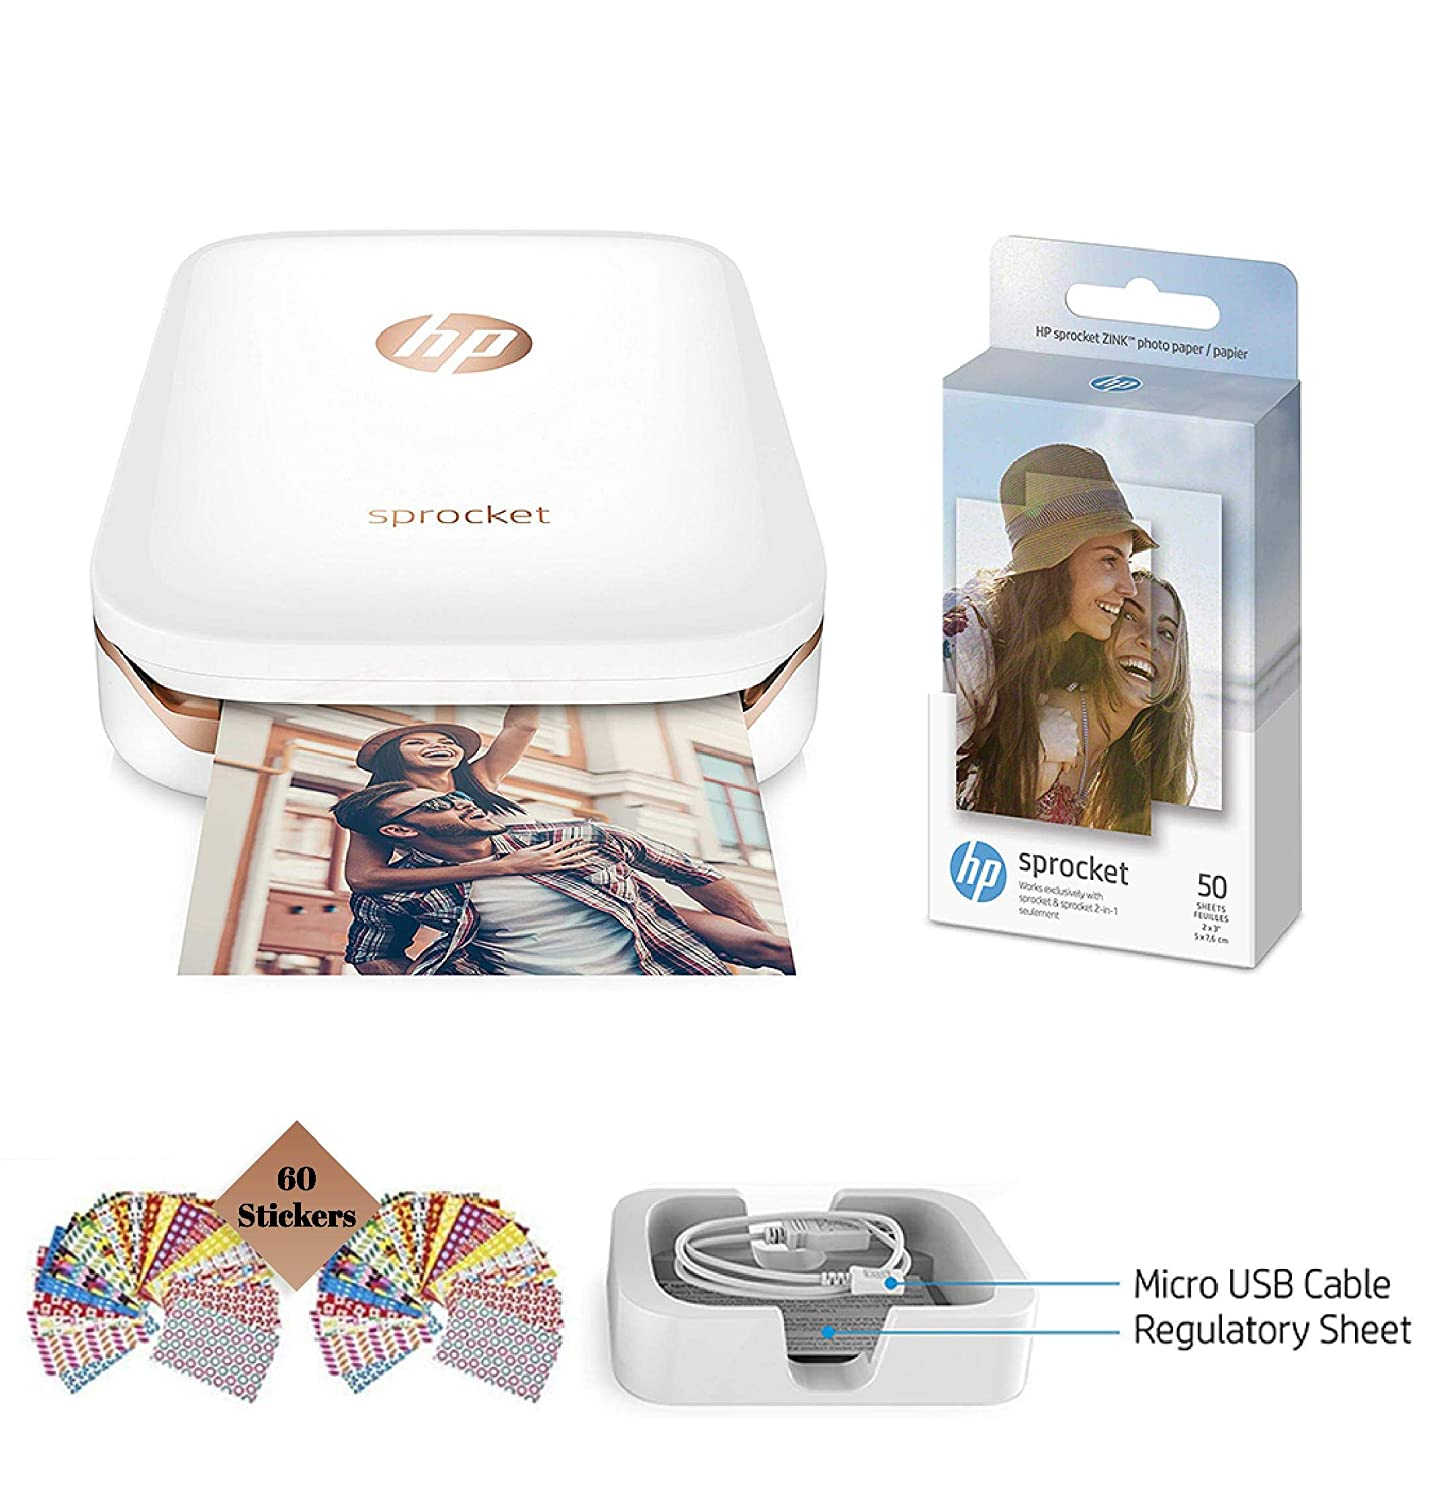 HP Sprocket Photo Printer, Print Social Media Photos on 2x3 Sticky-Backed Paper (White) + Photo Paper (60 Sheets) + USB Cable + 60 Decorative Stick-On Border Frames